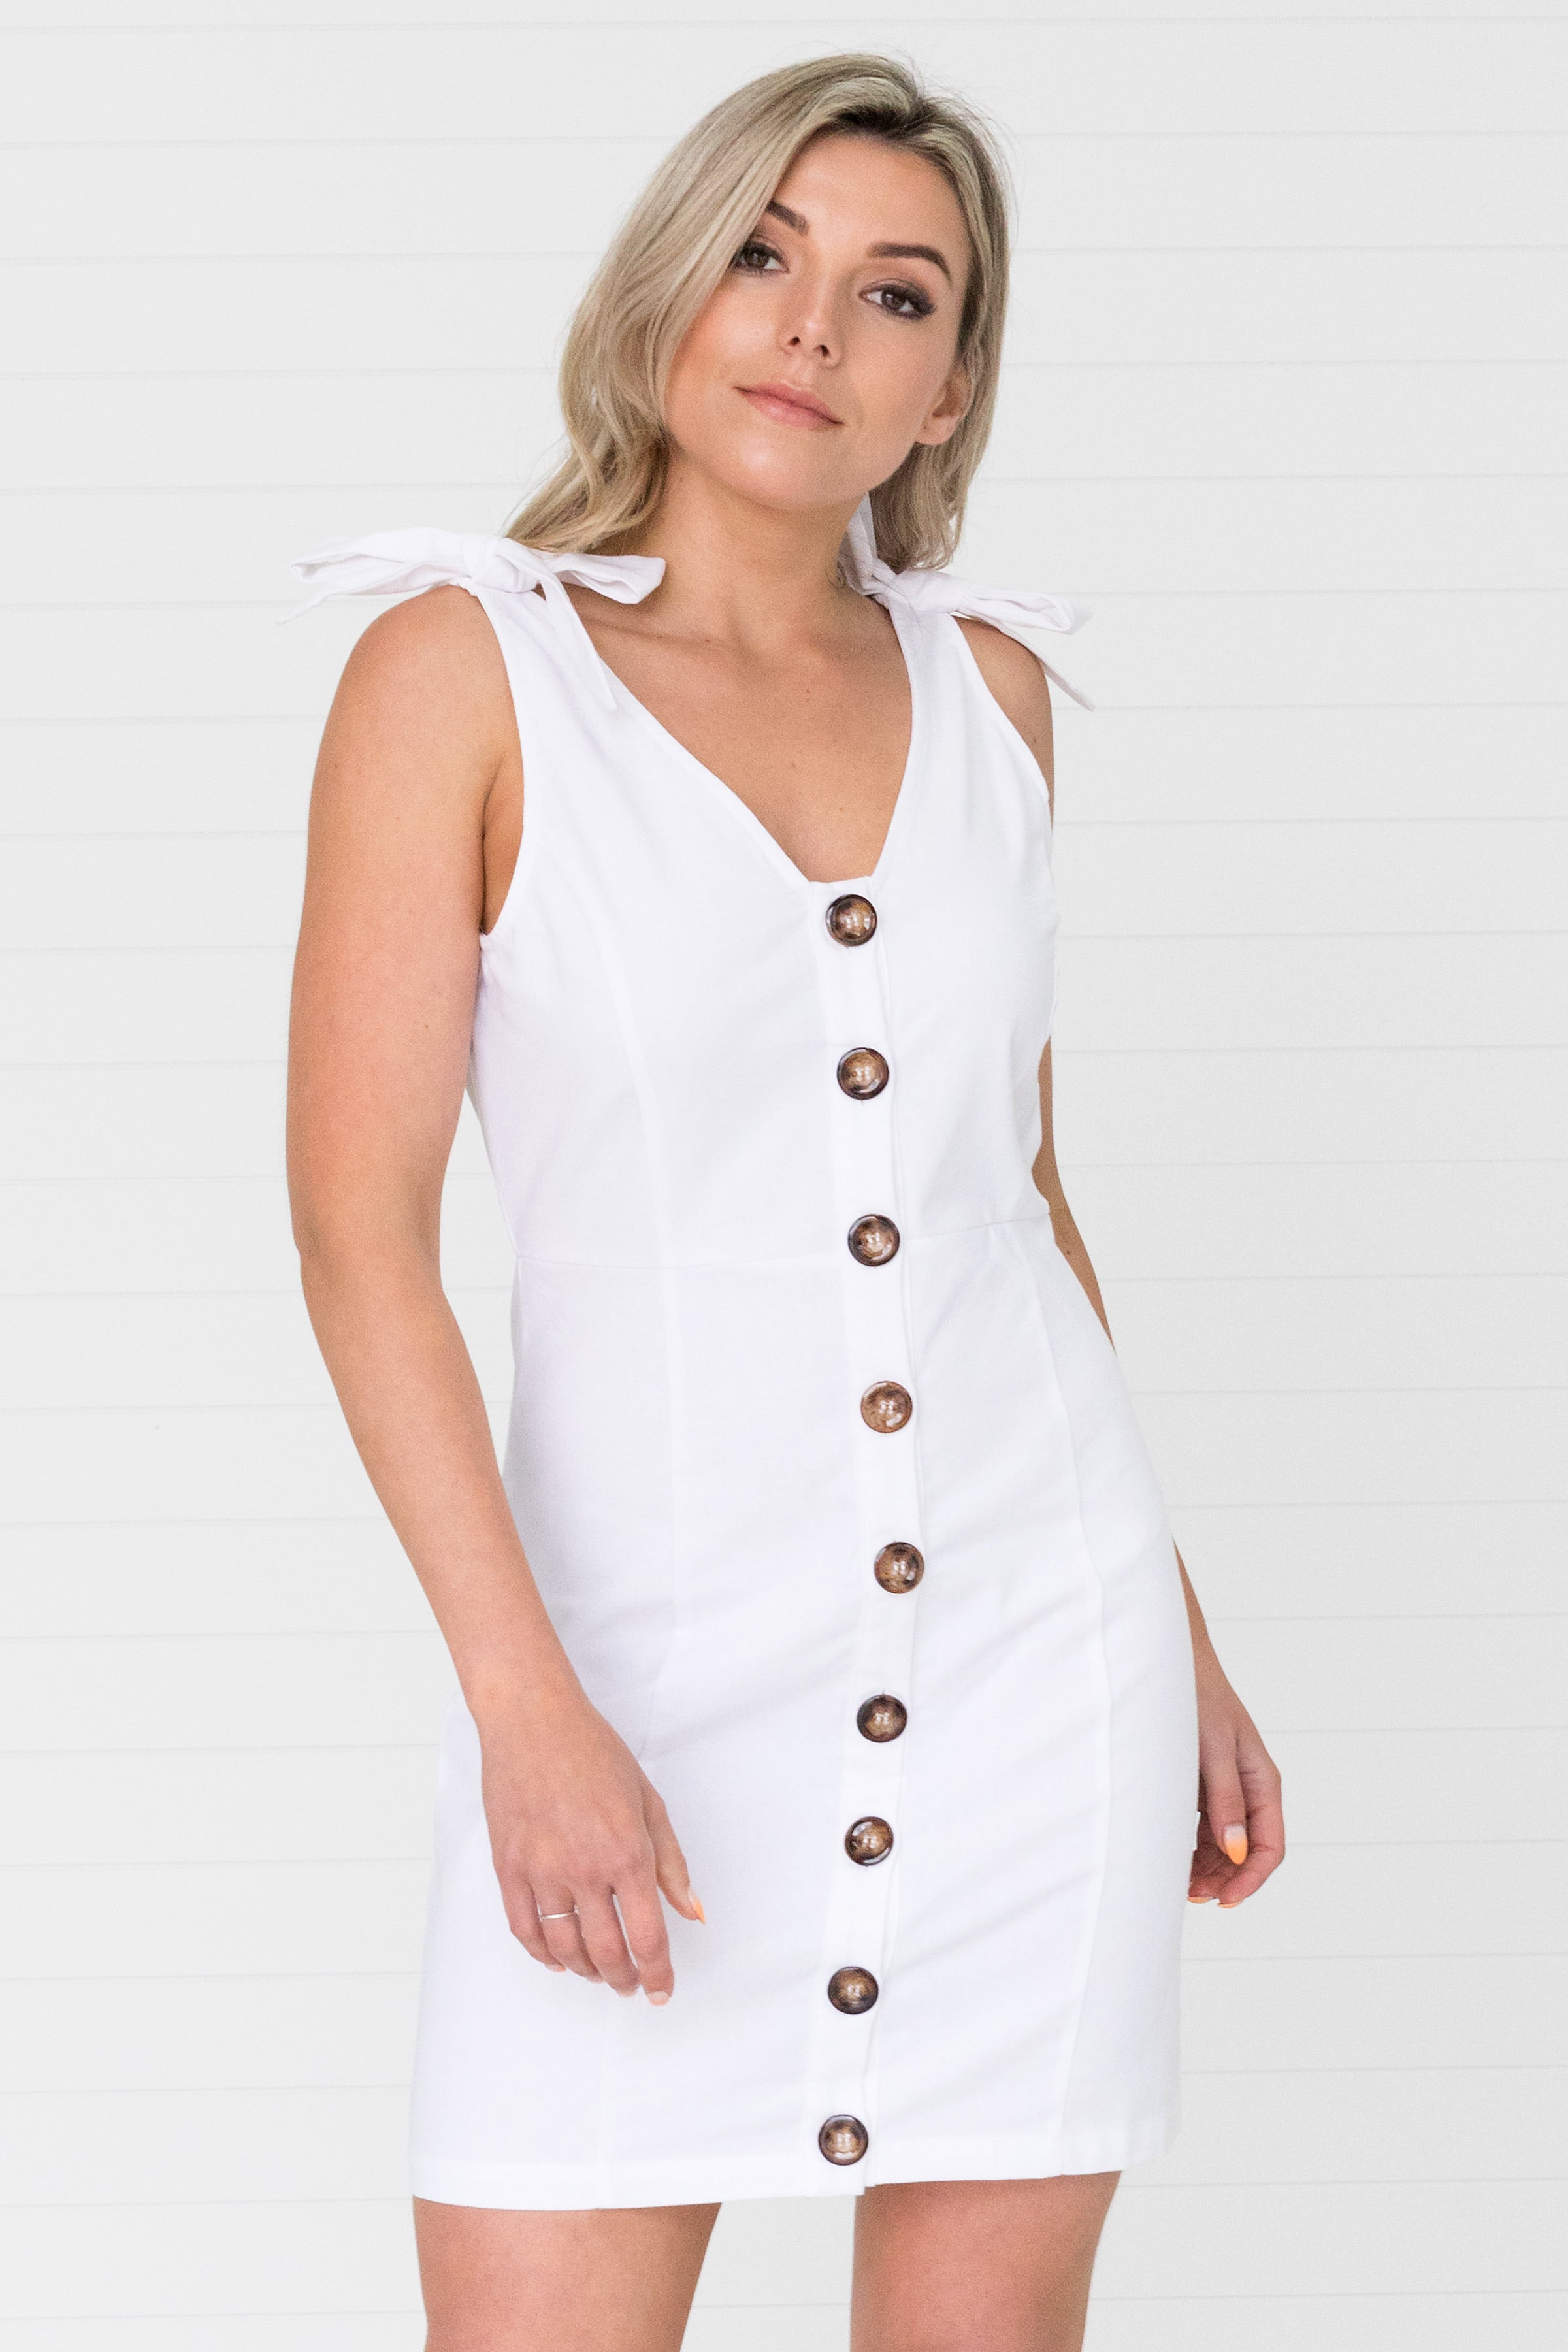 Colette Dress White - Was $59.95